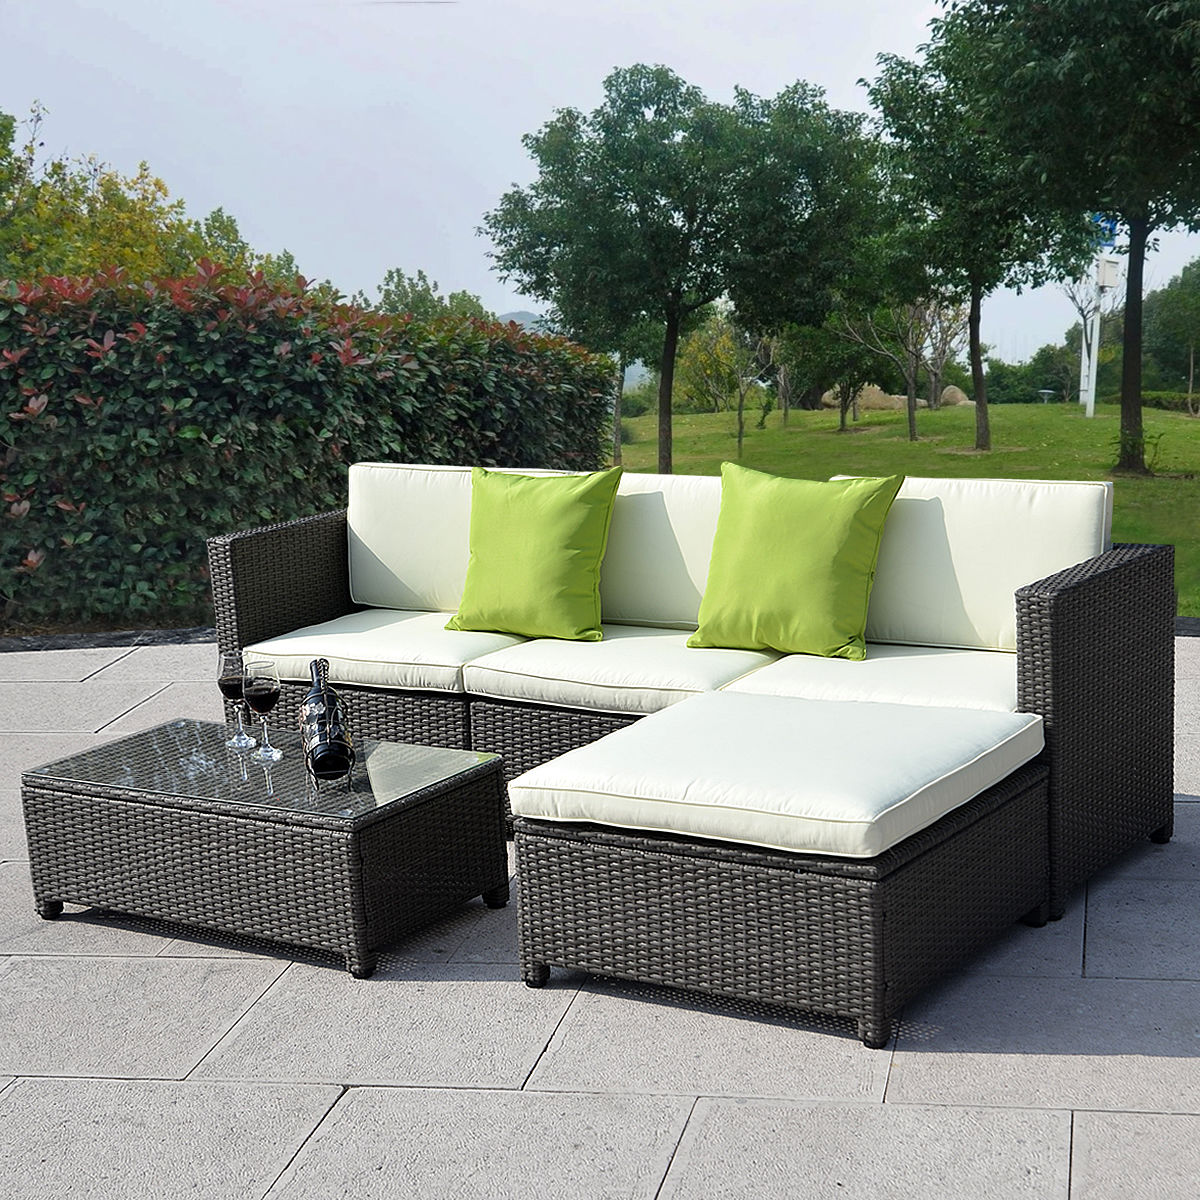 Outdoor Patio Wicker Sofa Set 5pc